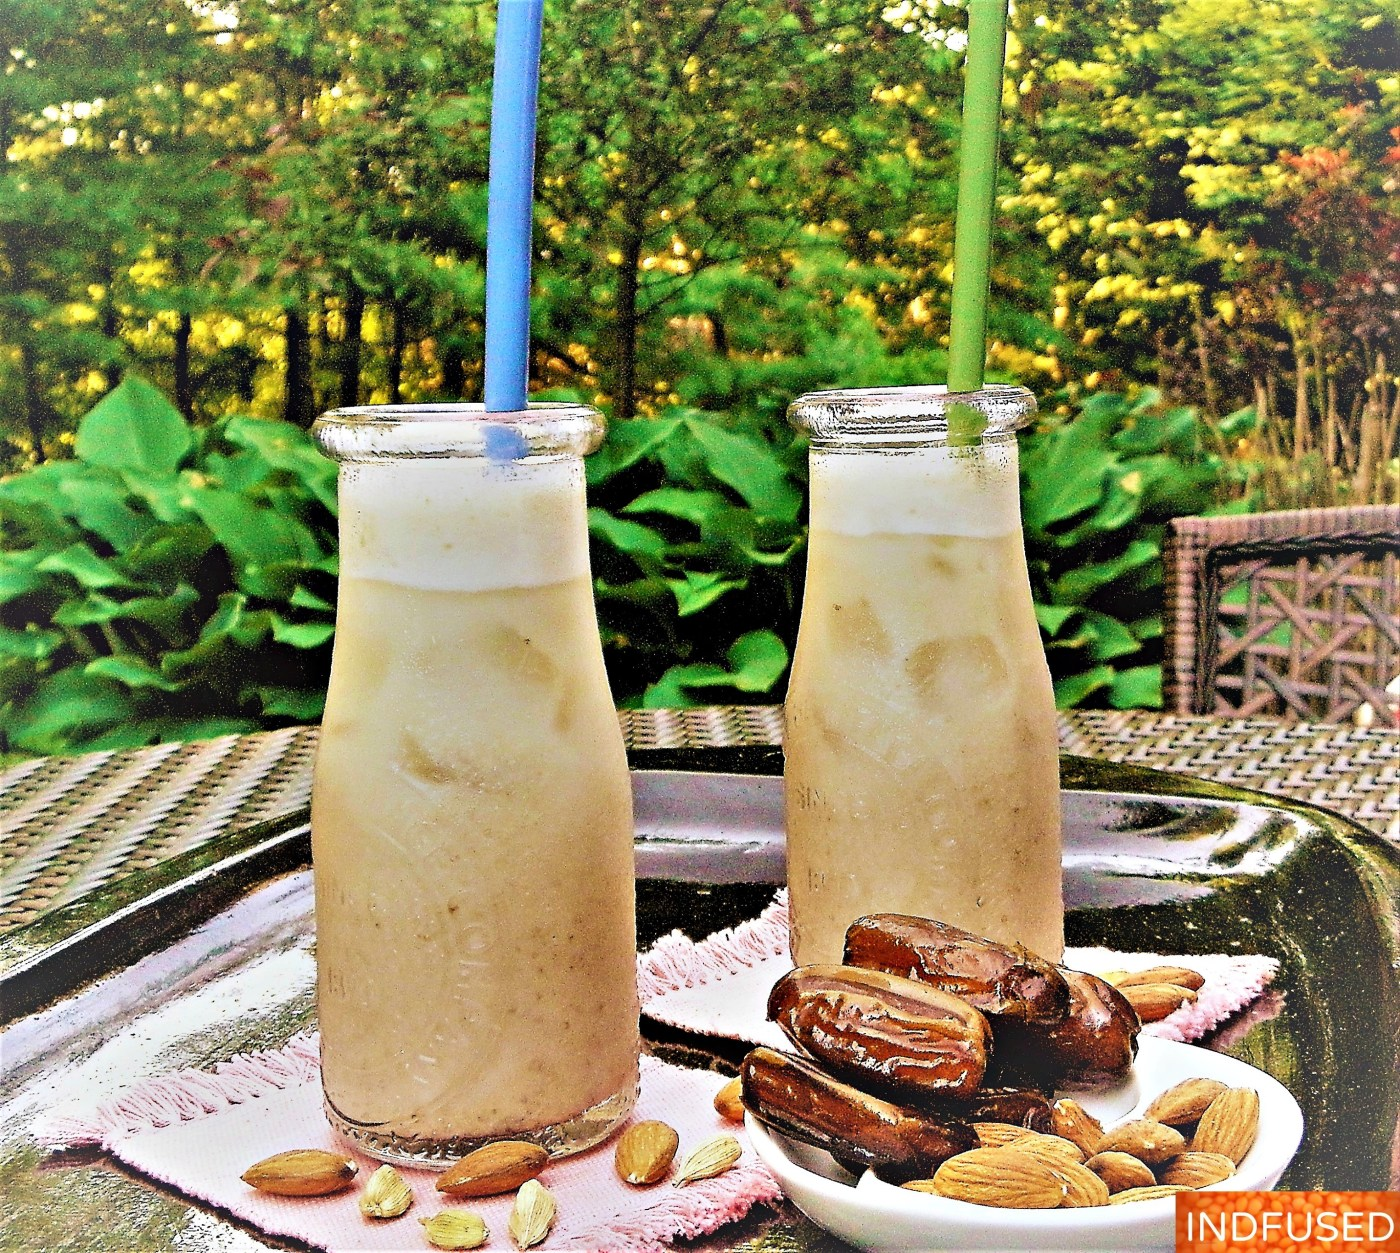 Father's Day easy recipe, nutritious, vegan, delectable milkshake made with almond milk, dates and cardamom with no added sugar!